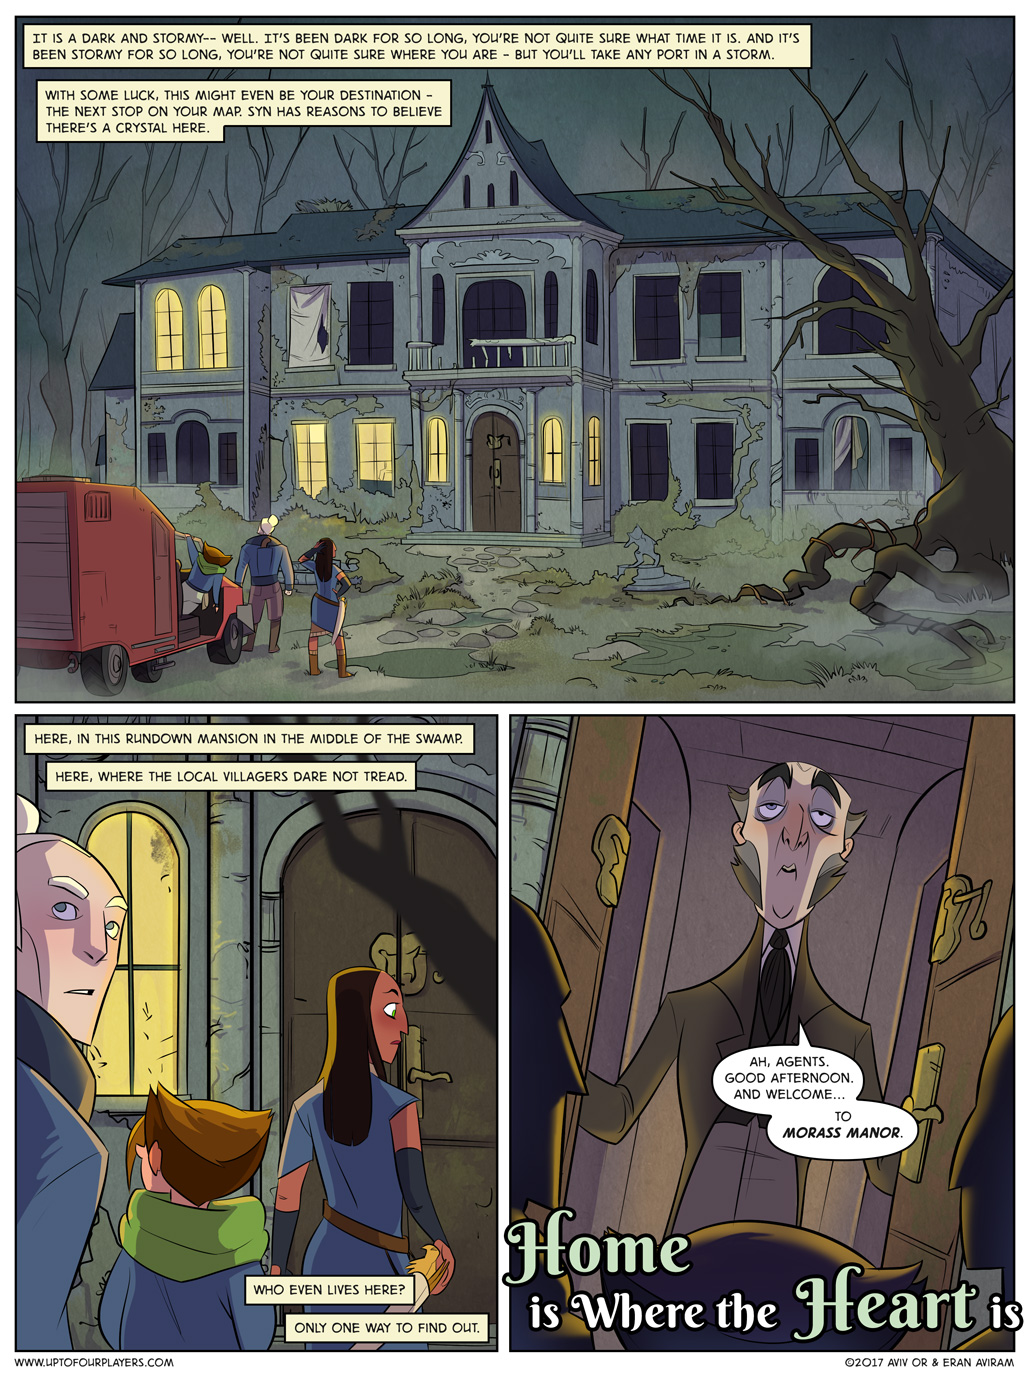 Home is Where the Heart is – Page 1